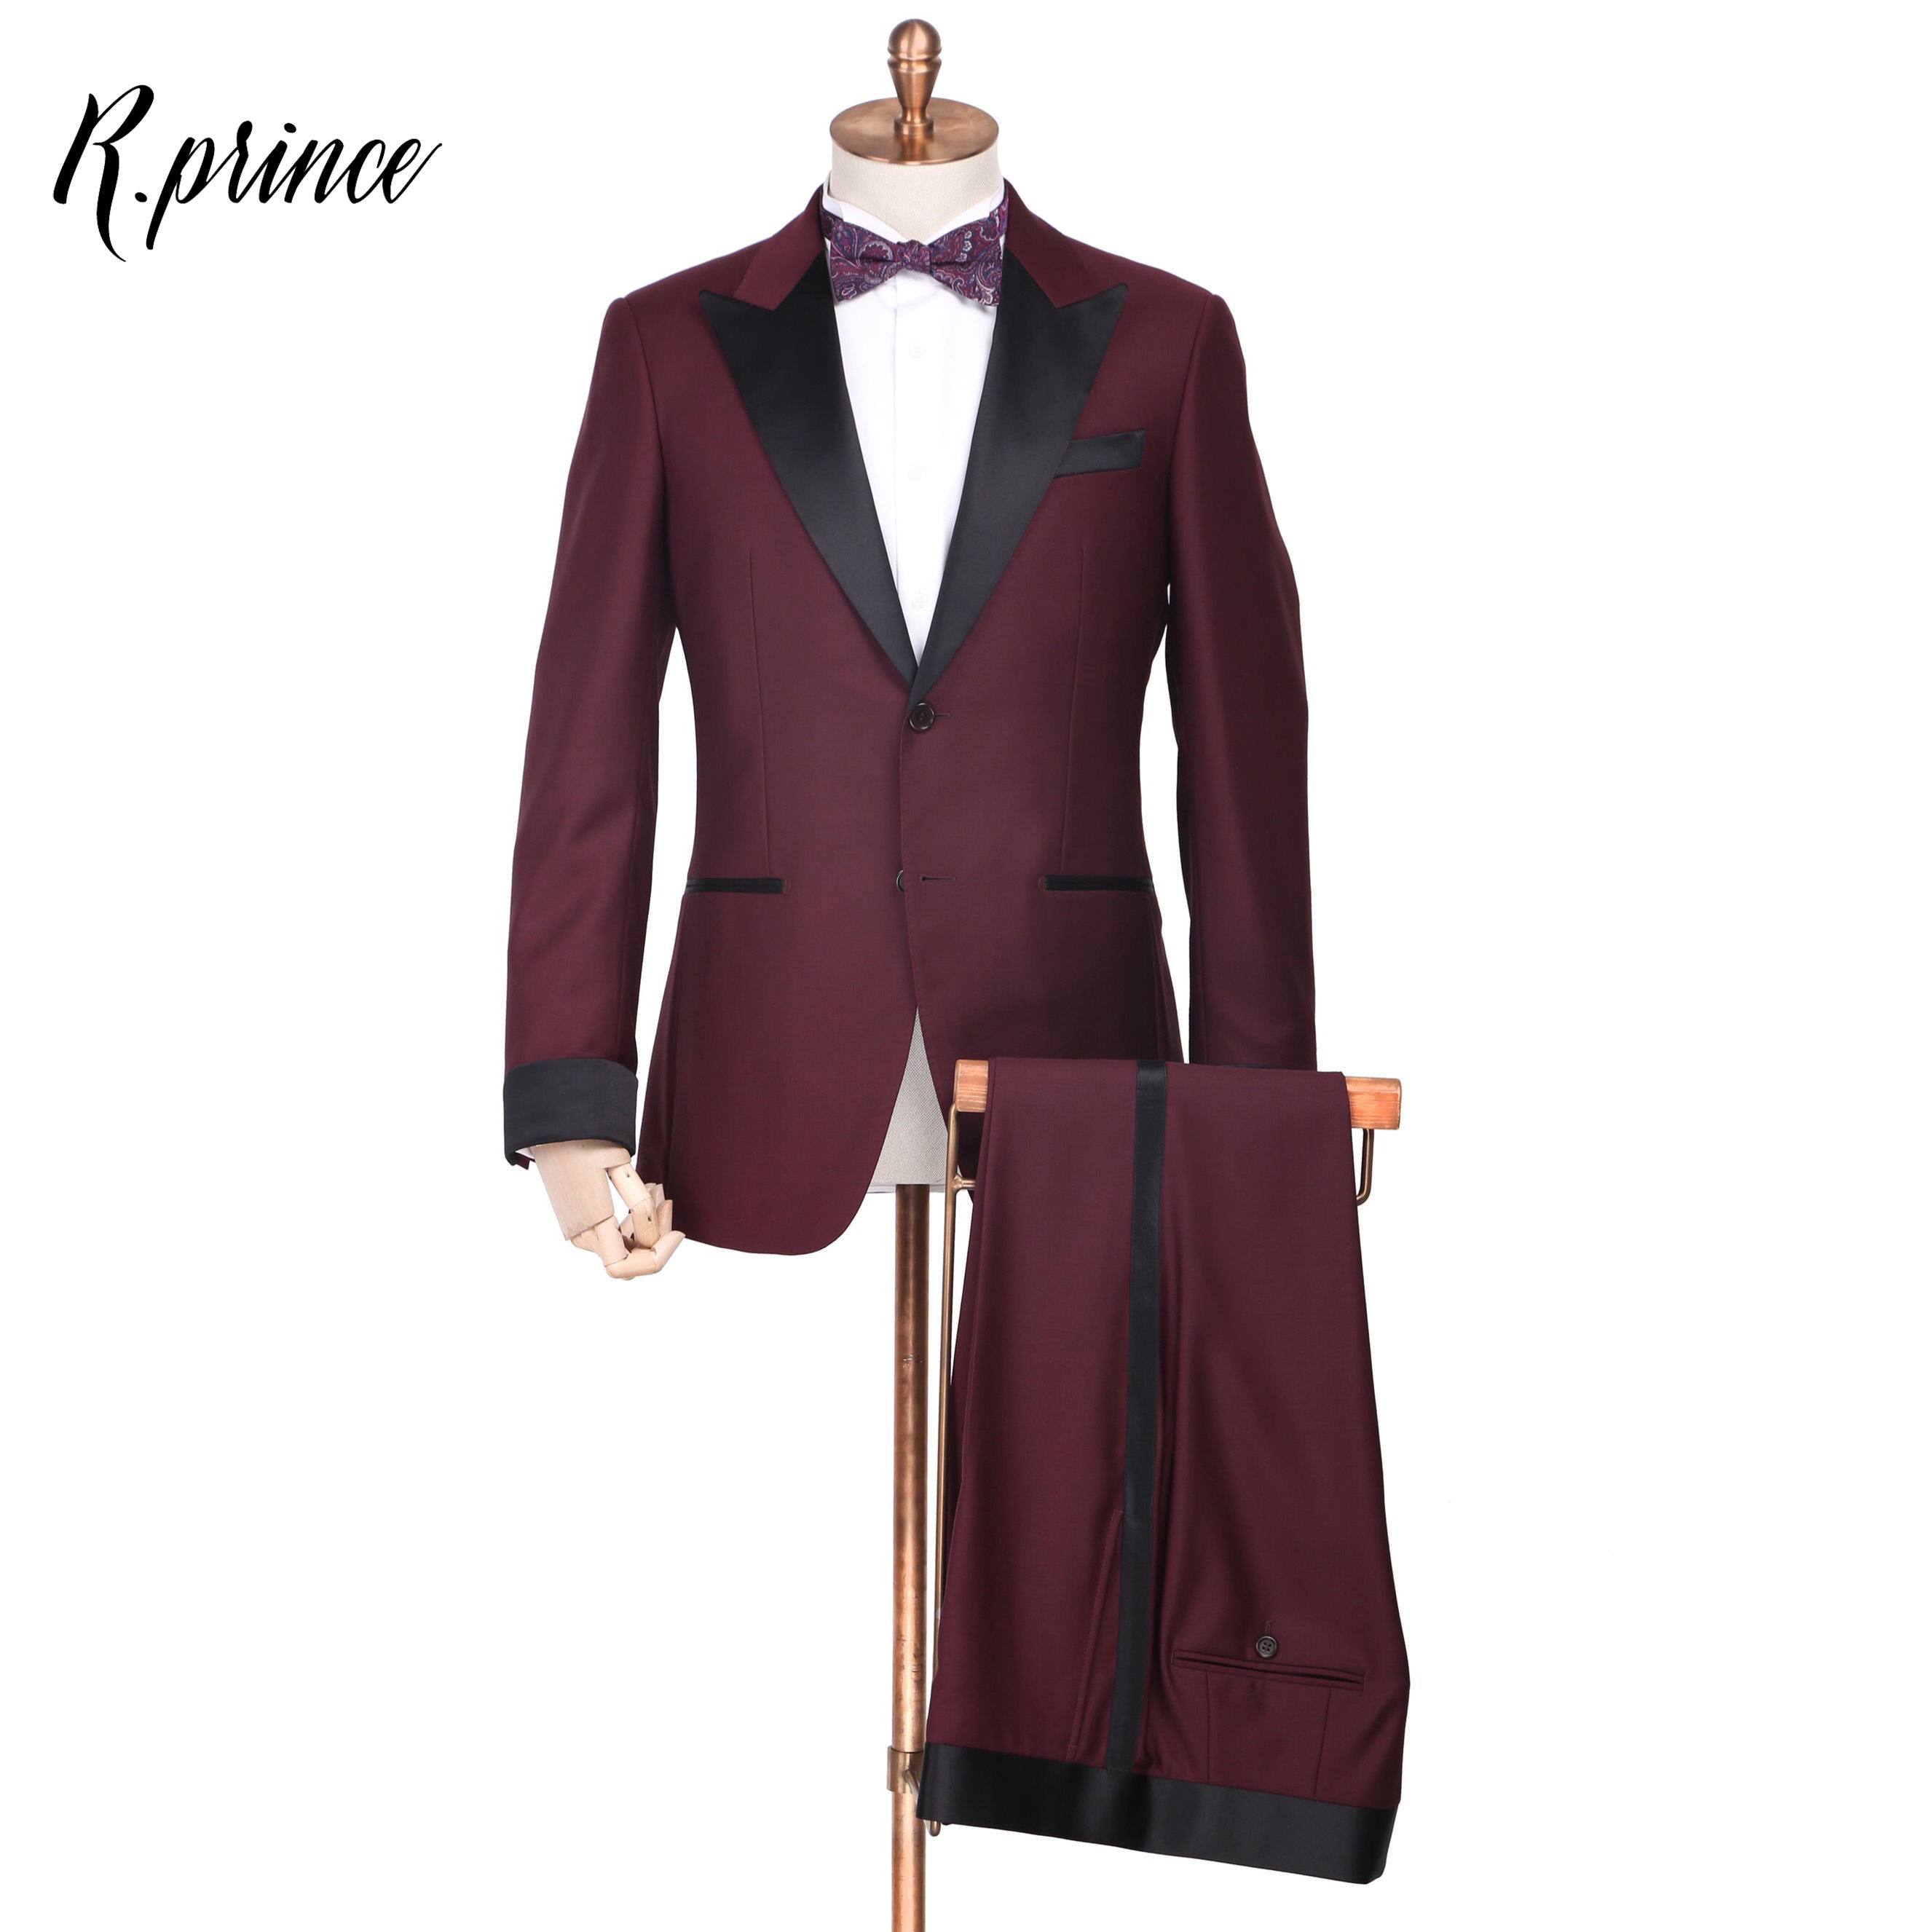 R.Prince Men's Customized Tuxedo Suits Fashion Wear Perfect Quality Classic Men's 2 Piece Tuxedo Outfit 100% wool